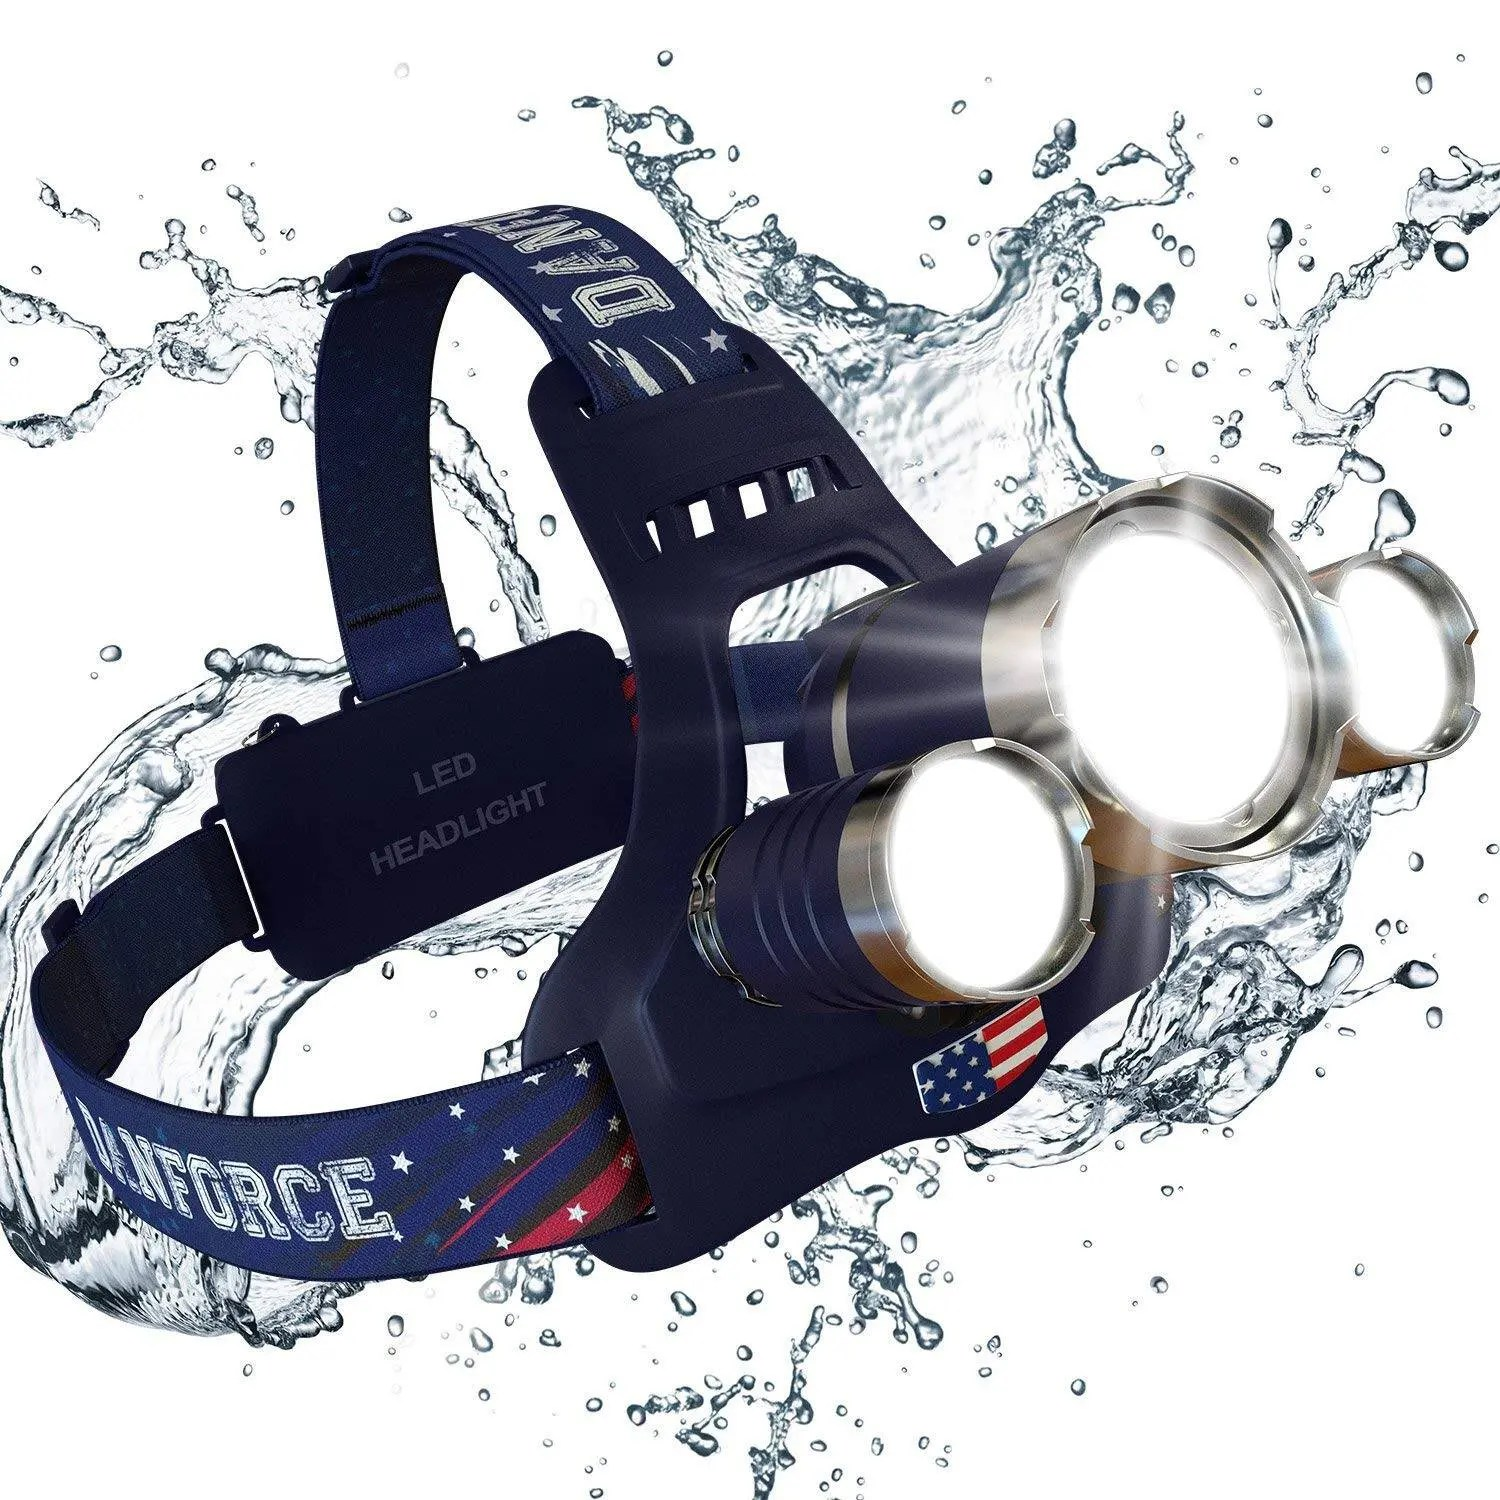 DanForce Rechargeable Headlamp